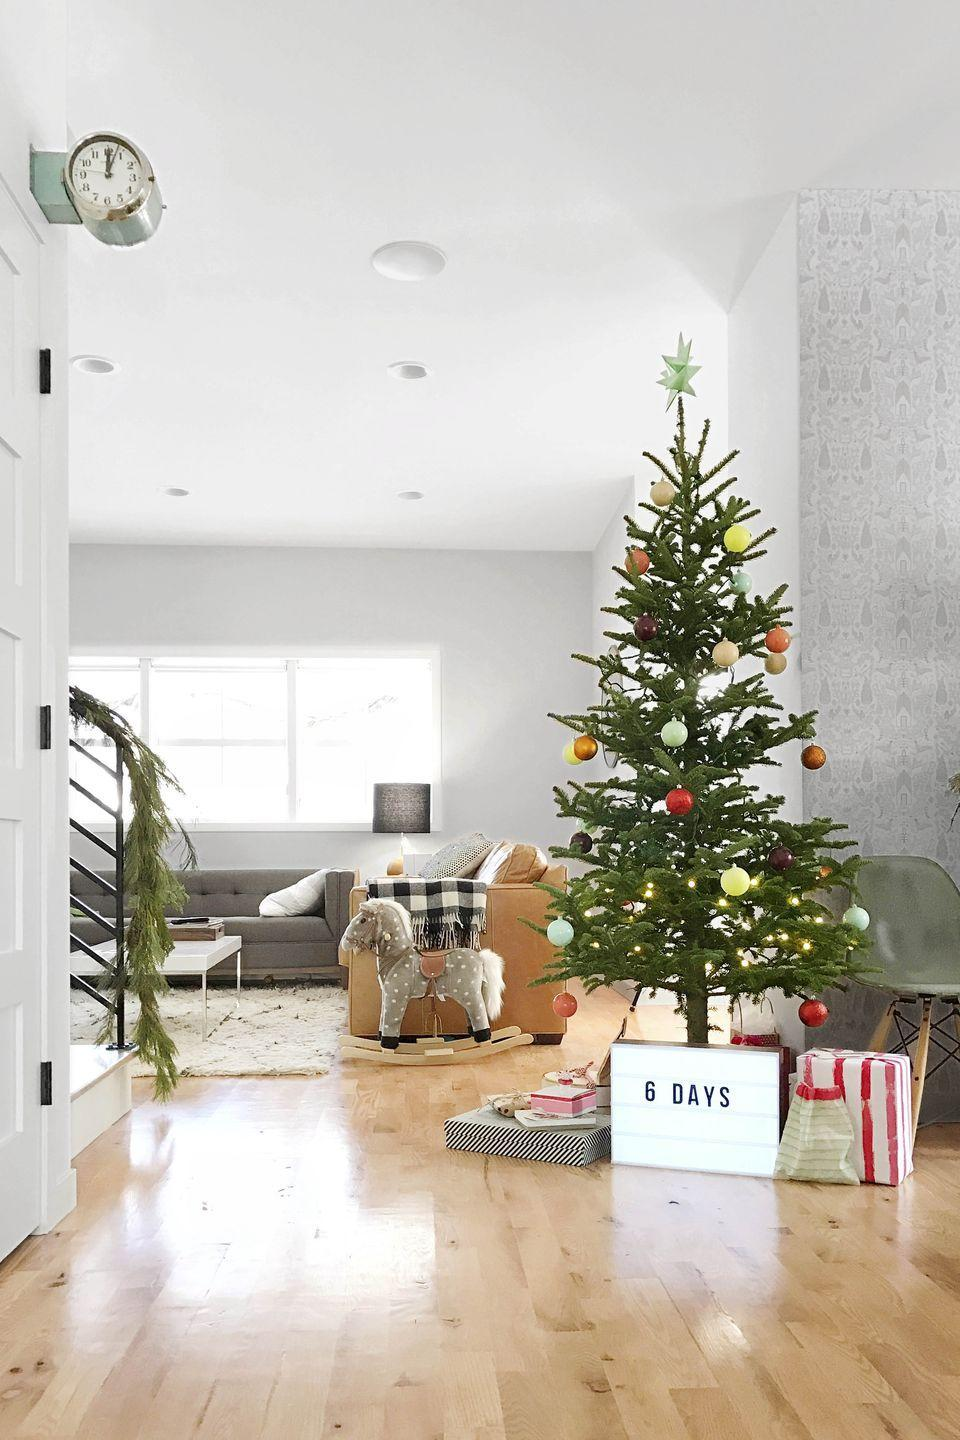 """<p>If the <em>Peanuts </em>movie taught us anything, it's that you don't need a big over-the-top spruce to find the """"true meaning of Christmas."""" If your prefer a minimalist Christmas decorating vibe, opt for a simple faux tree decorated with a handful of colorful ornaments.</p>"""